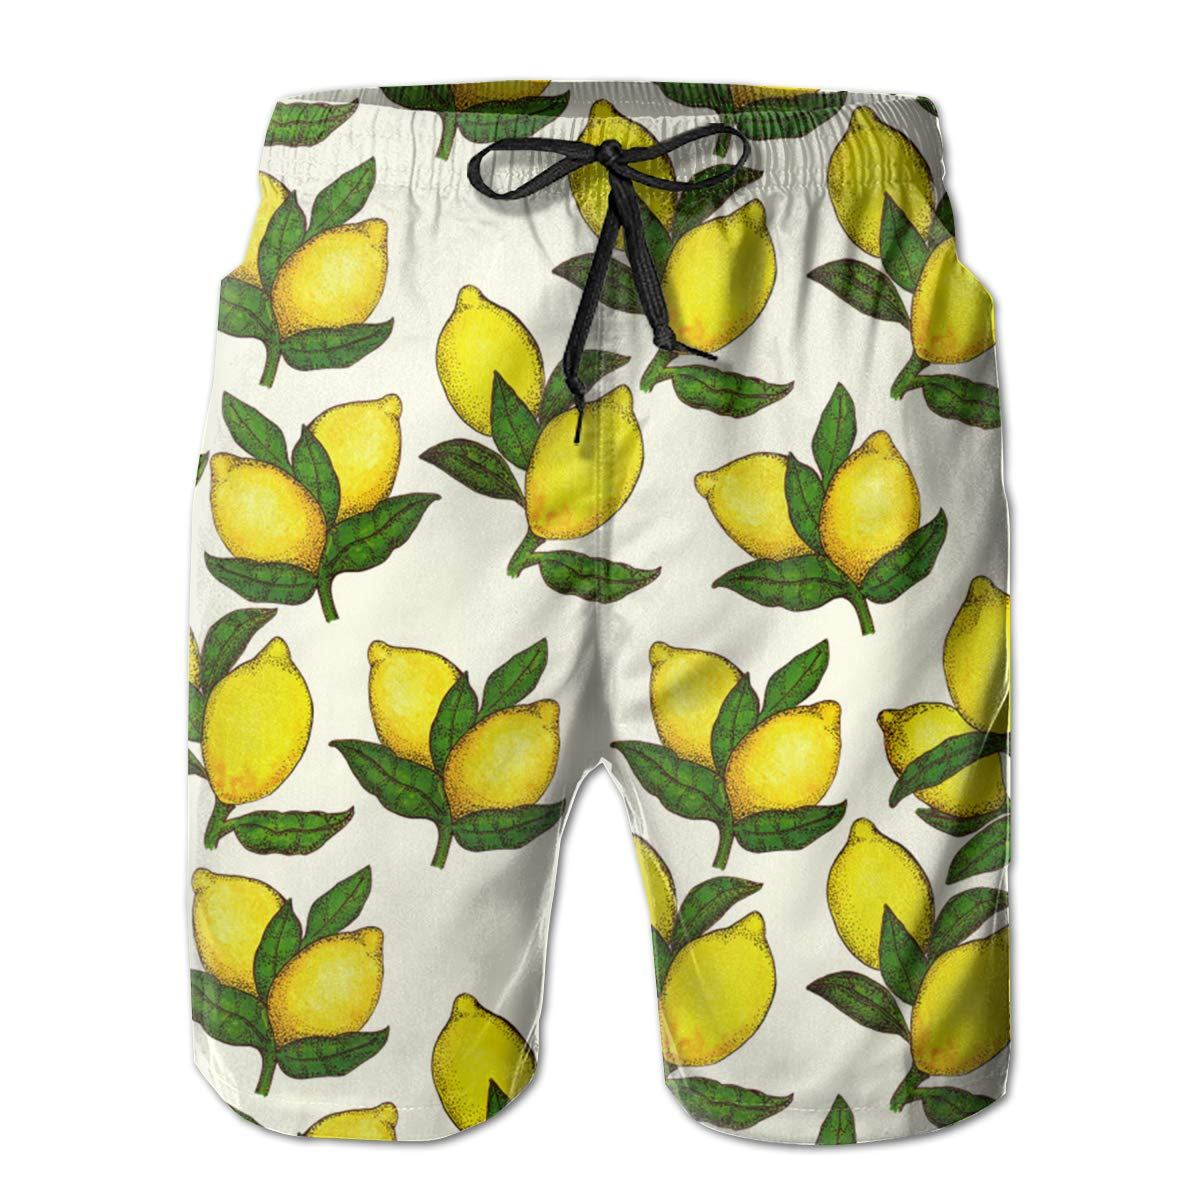 MikonsuCute Pair of Lemon Mens Colorful Swim Trunks Beach Board Shorts with Lining